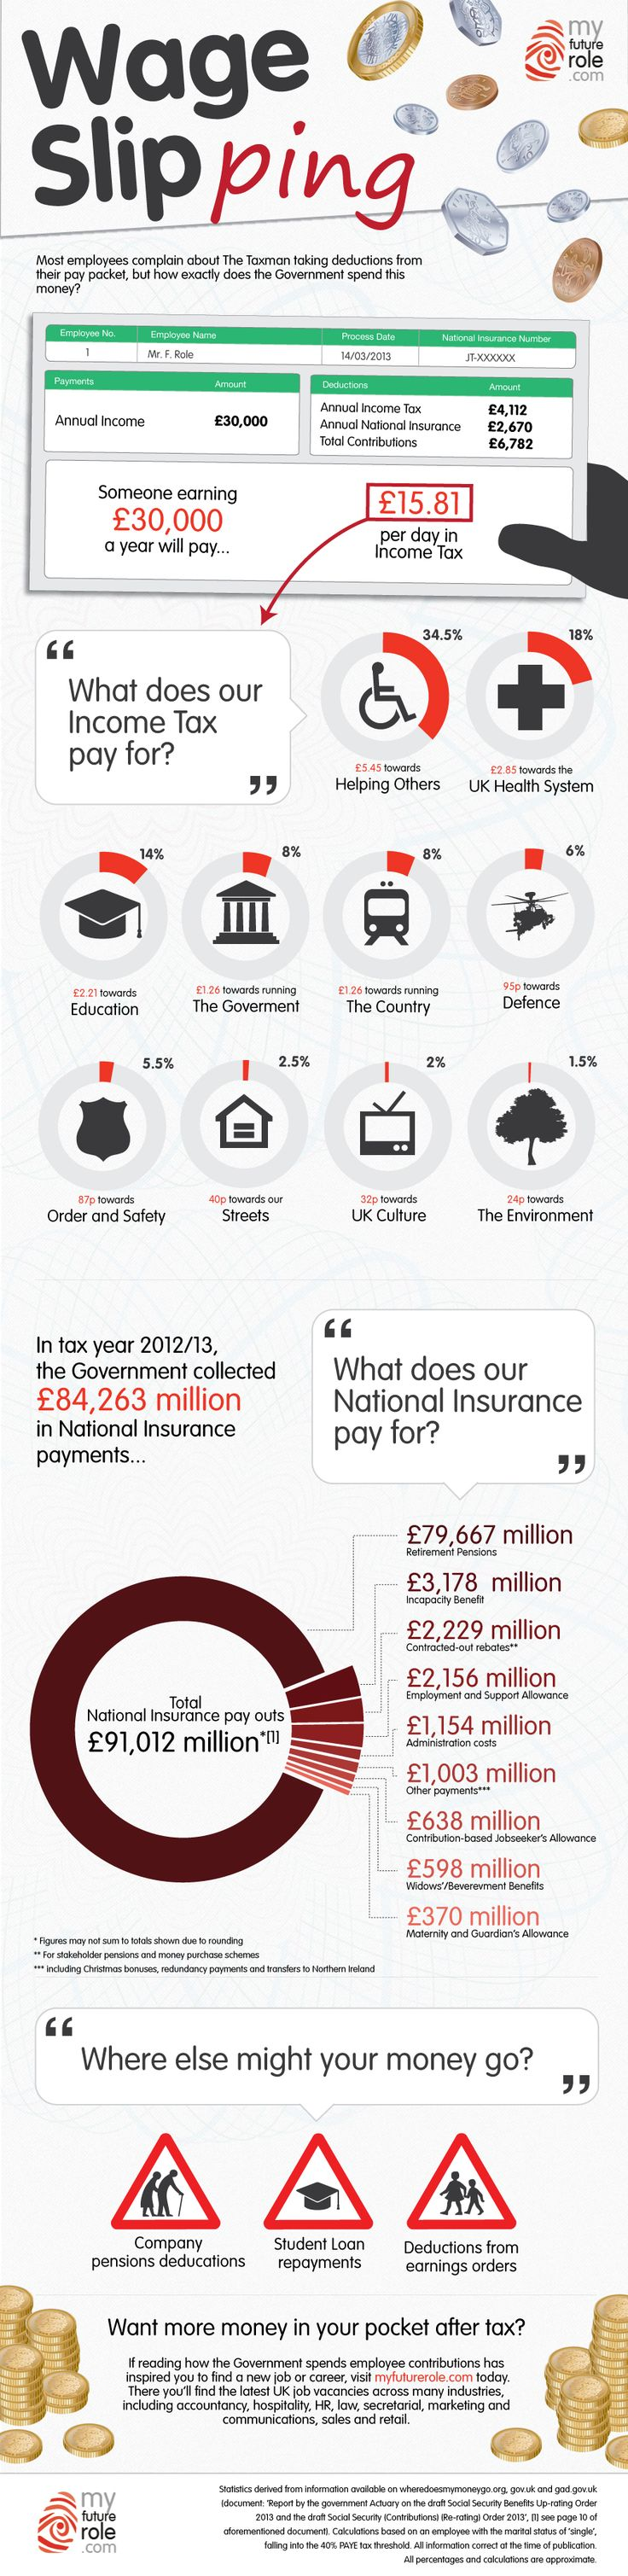 How Does the Government Spend Your Income Tax and National Insurance?